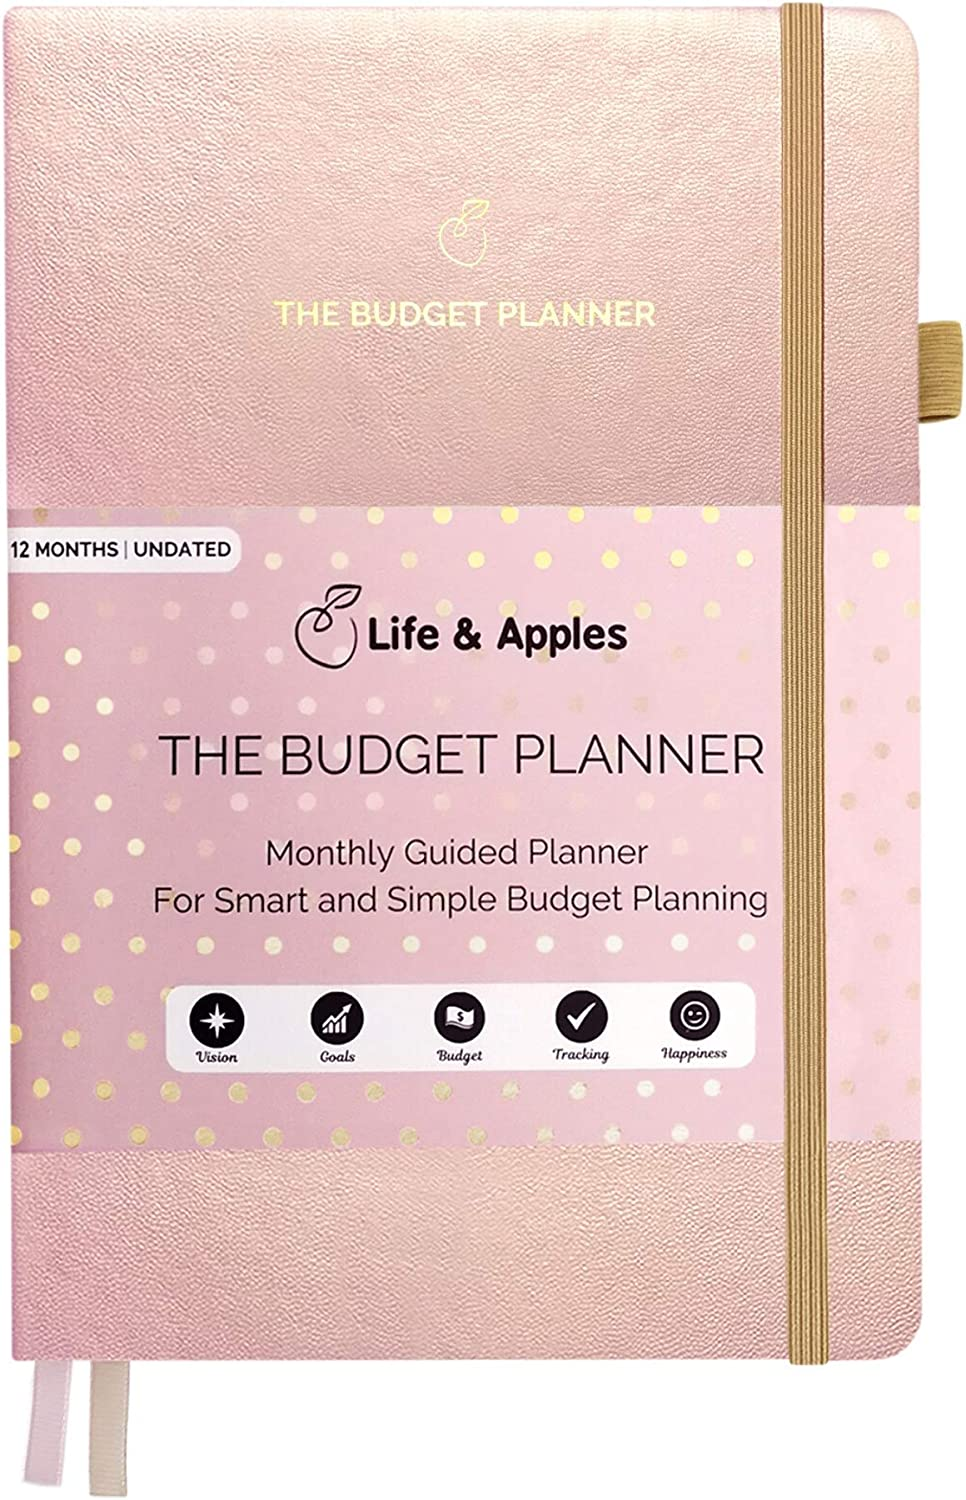 Life & Apples Budget Planner - Monthly Budgeting Notebook for Family and Personal Finance - Expense Tracker Journal, Bill Organizer and Accounts Book - Undated, Rose Gold